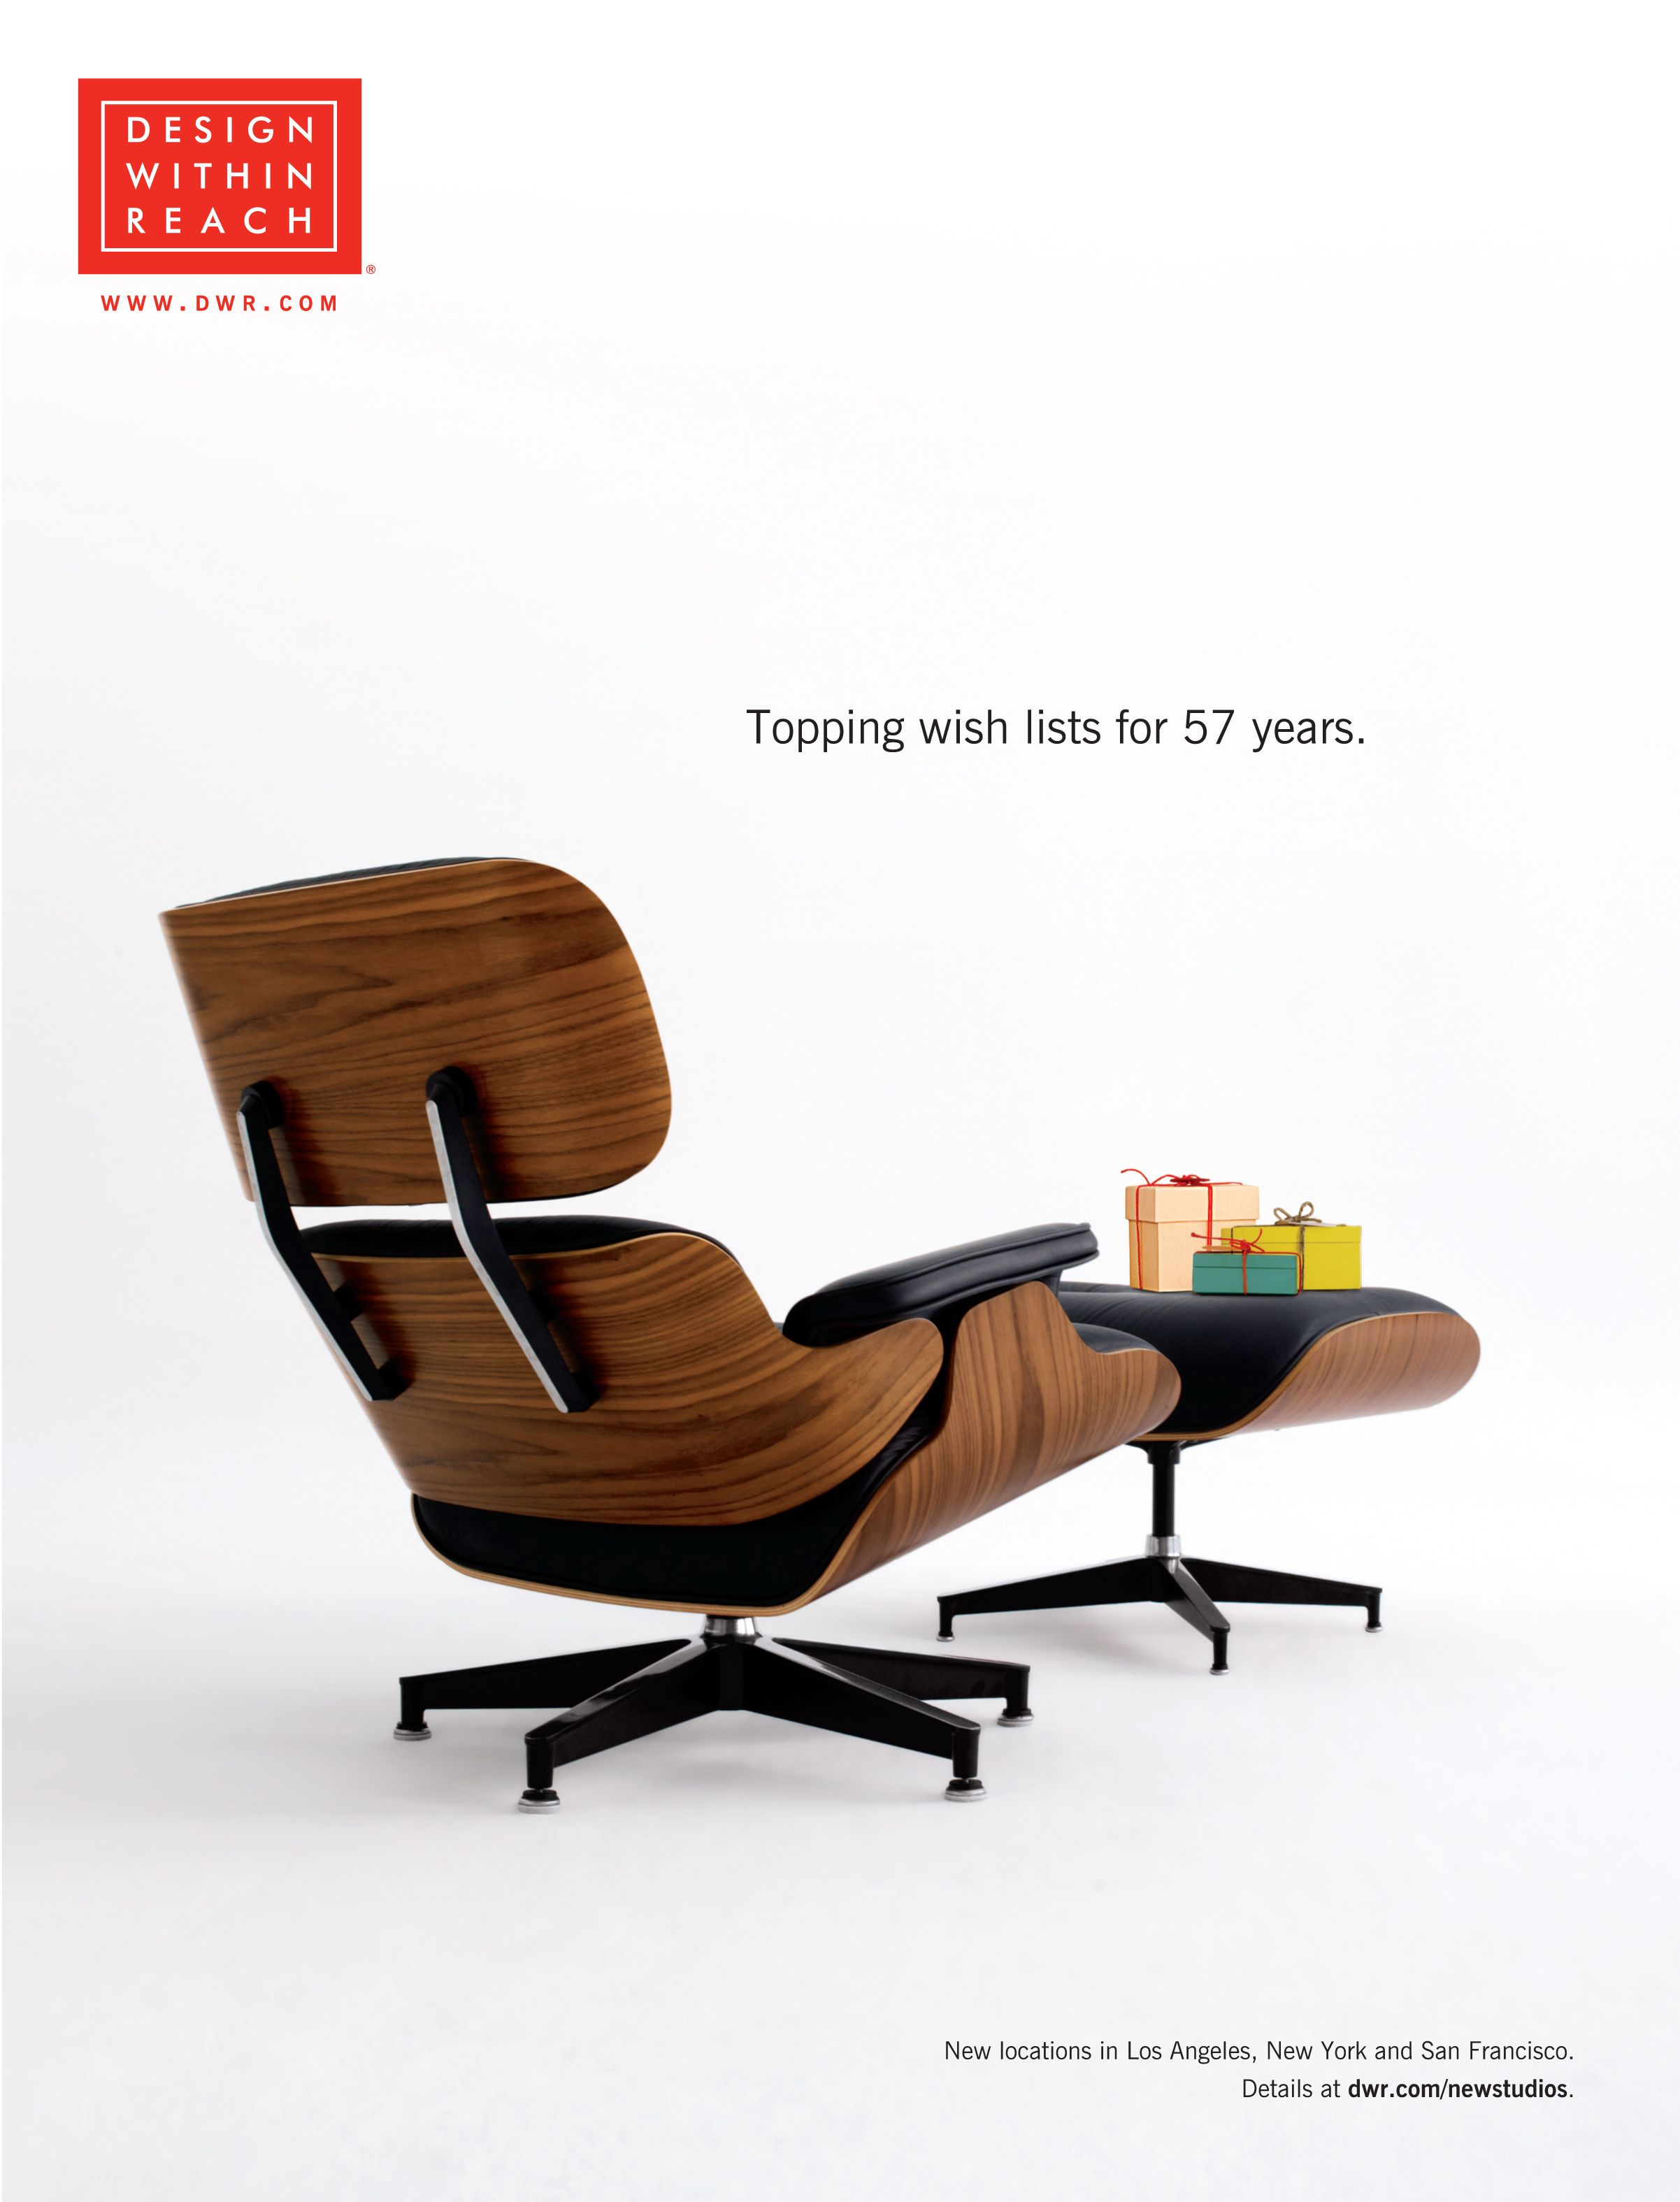 Merveilleux 2013 December DWR Catalog Cover Featuring The Beautiful Eames Lounge U0026  Ottoman.